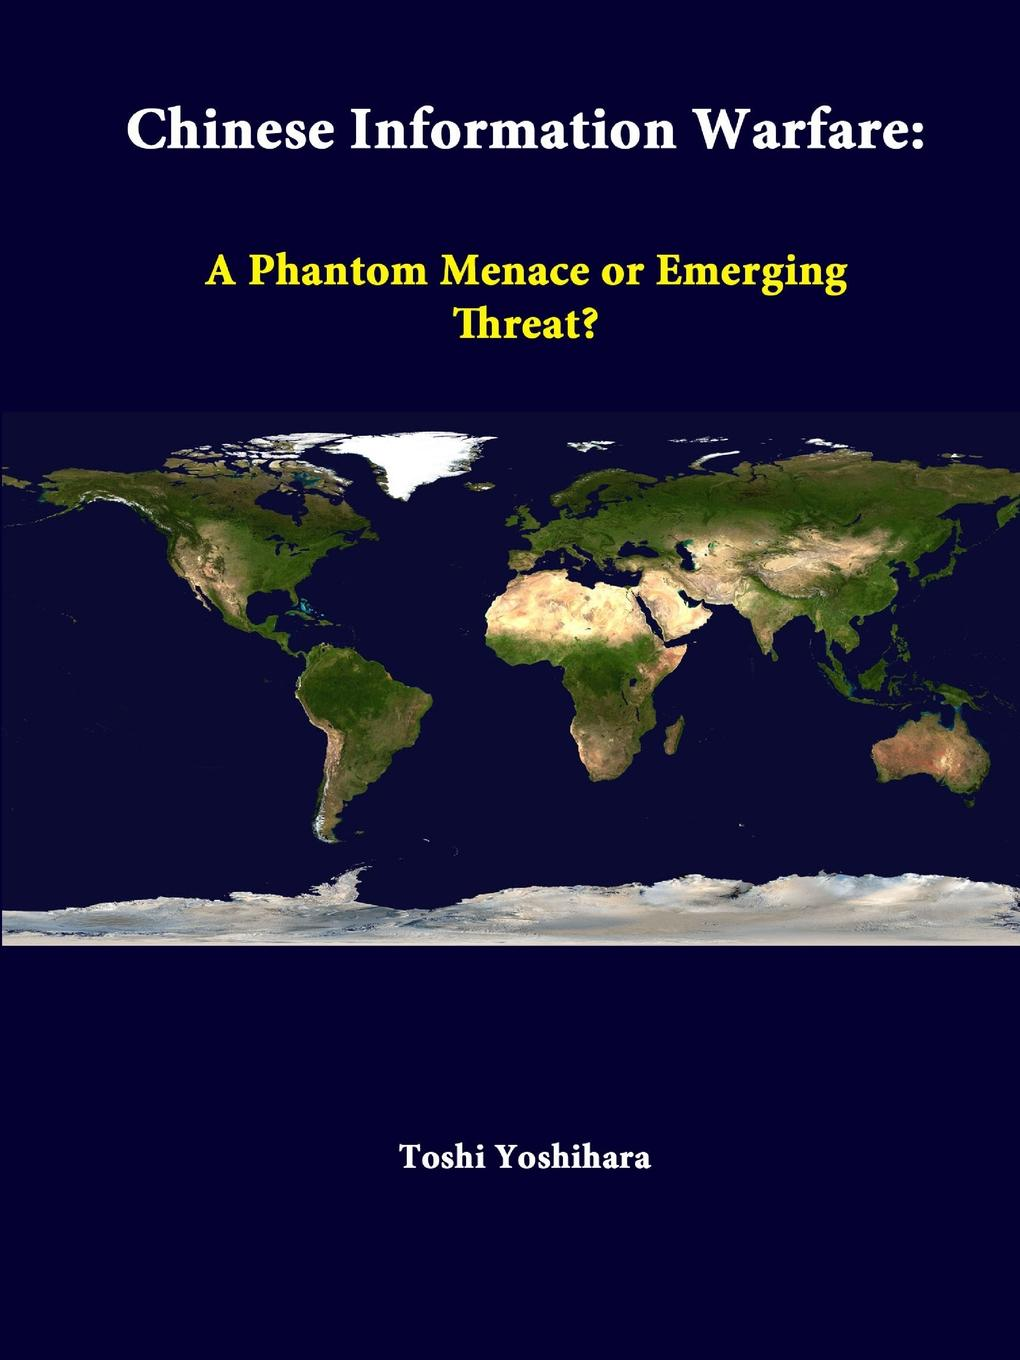 Toshi Yoshihara, Strategic Studies Institute Chinese Information Warfare. A Phantom Menace or Emerging Threat. скальп петуха veniard chinese cock cape